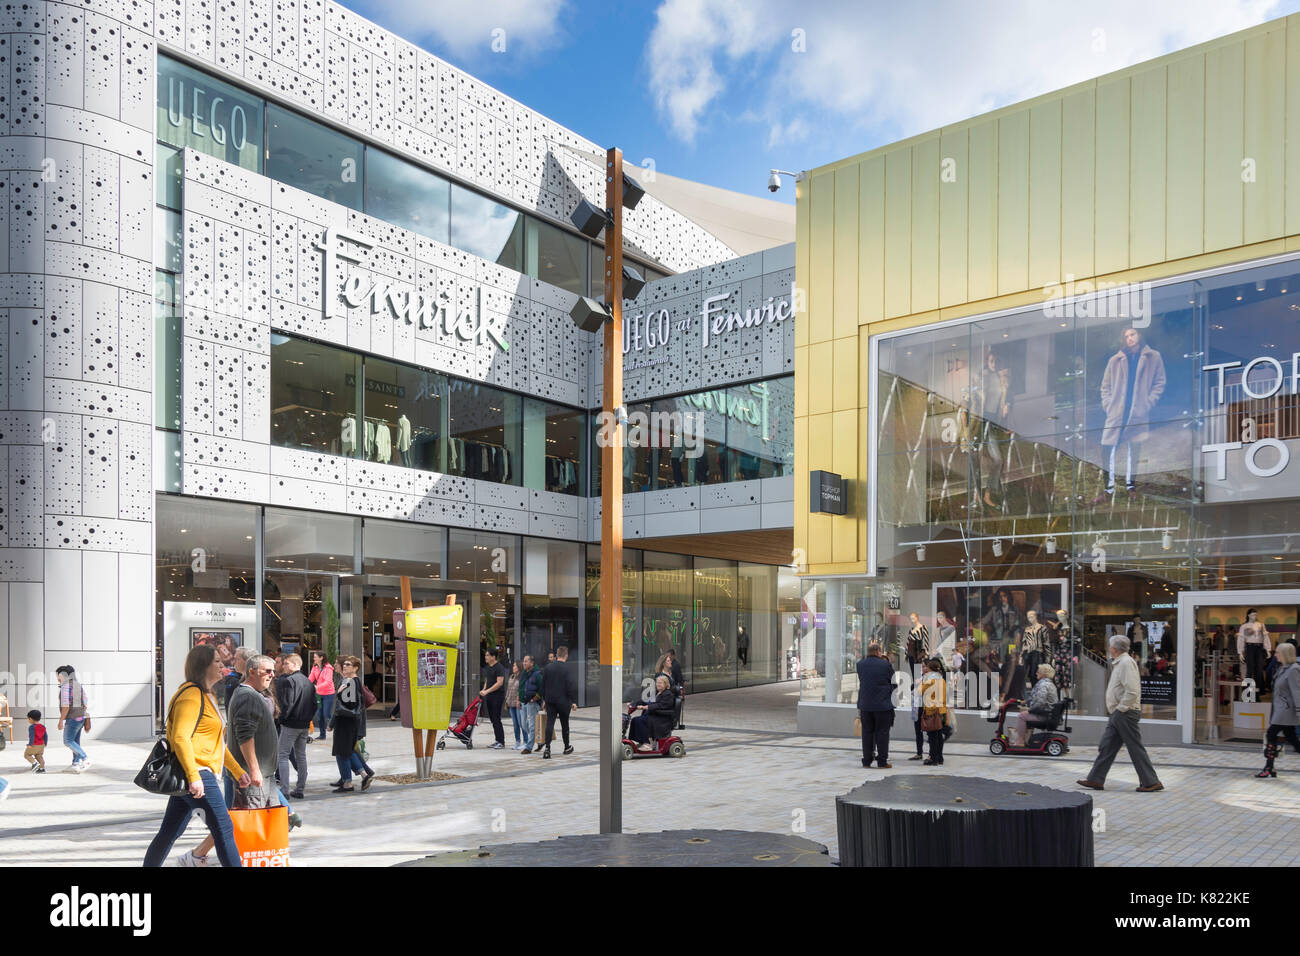 Fenwick and Topshop department stores on The Avenue, The Lexicon, Bracknell, Berkshire, England, United Kingdom - Stock Image